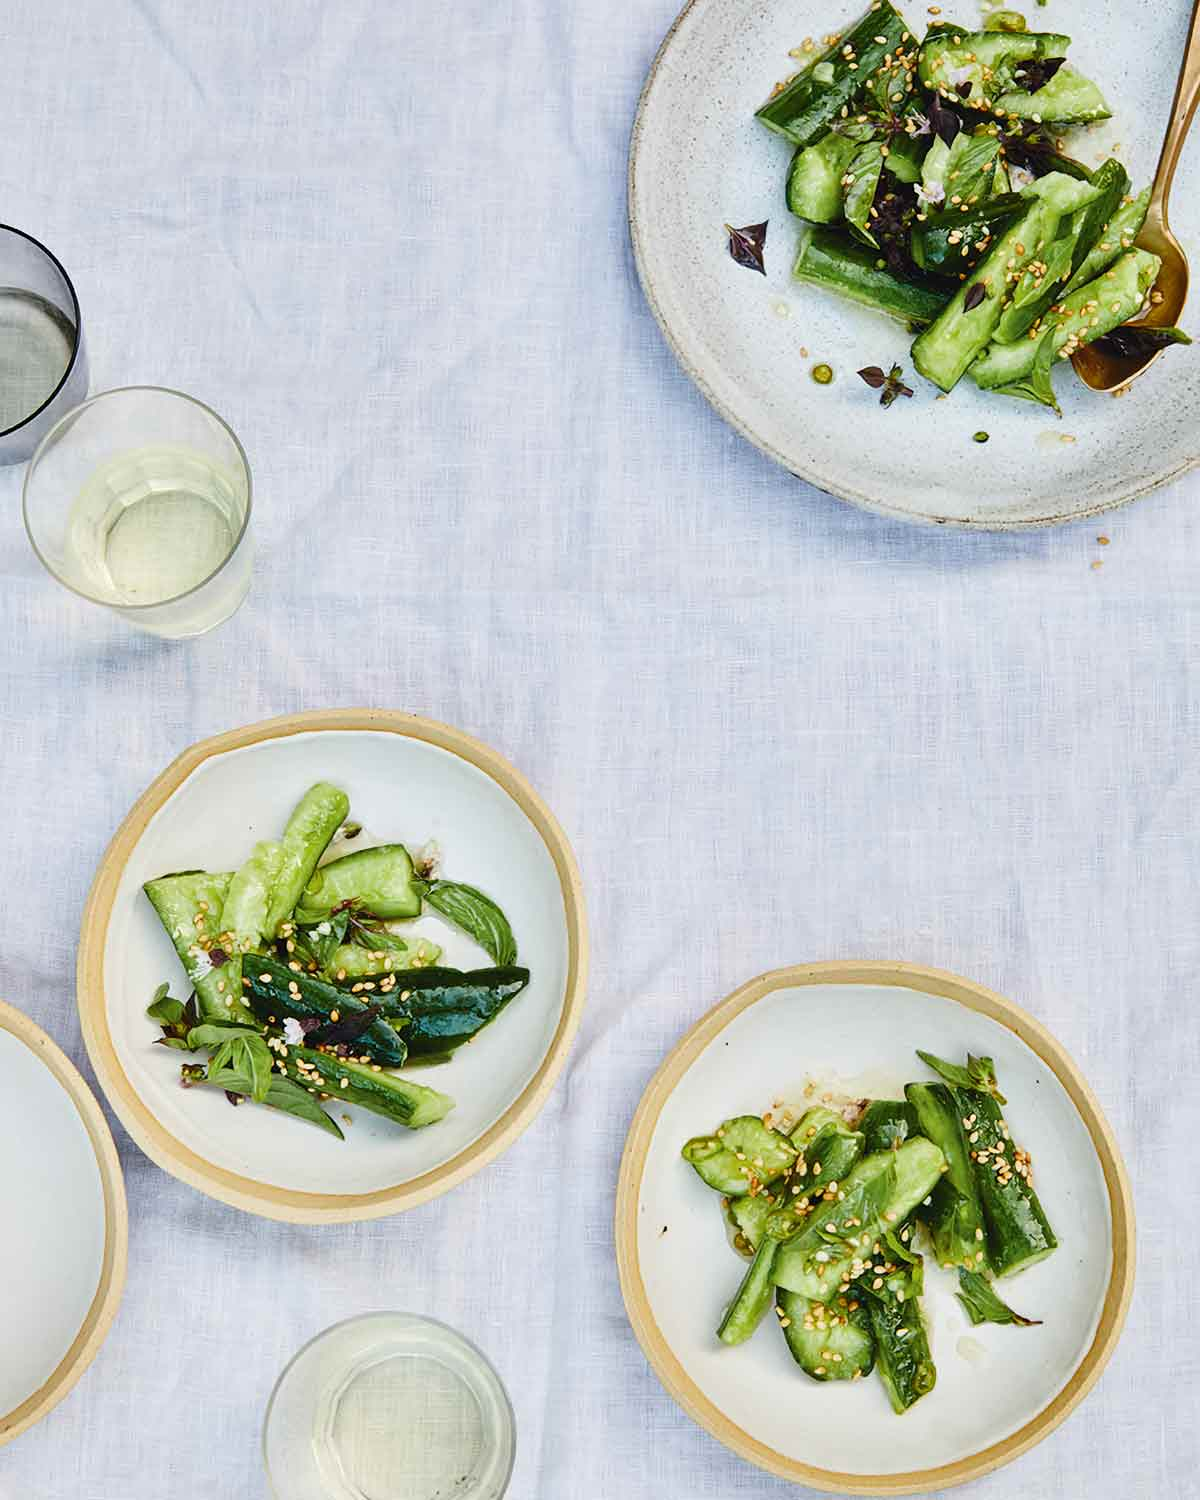 A serving plate and several individual plates topped with Chinese smashed cucumber salad.